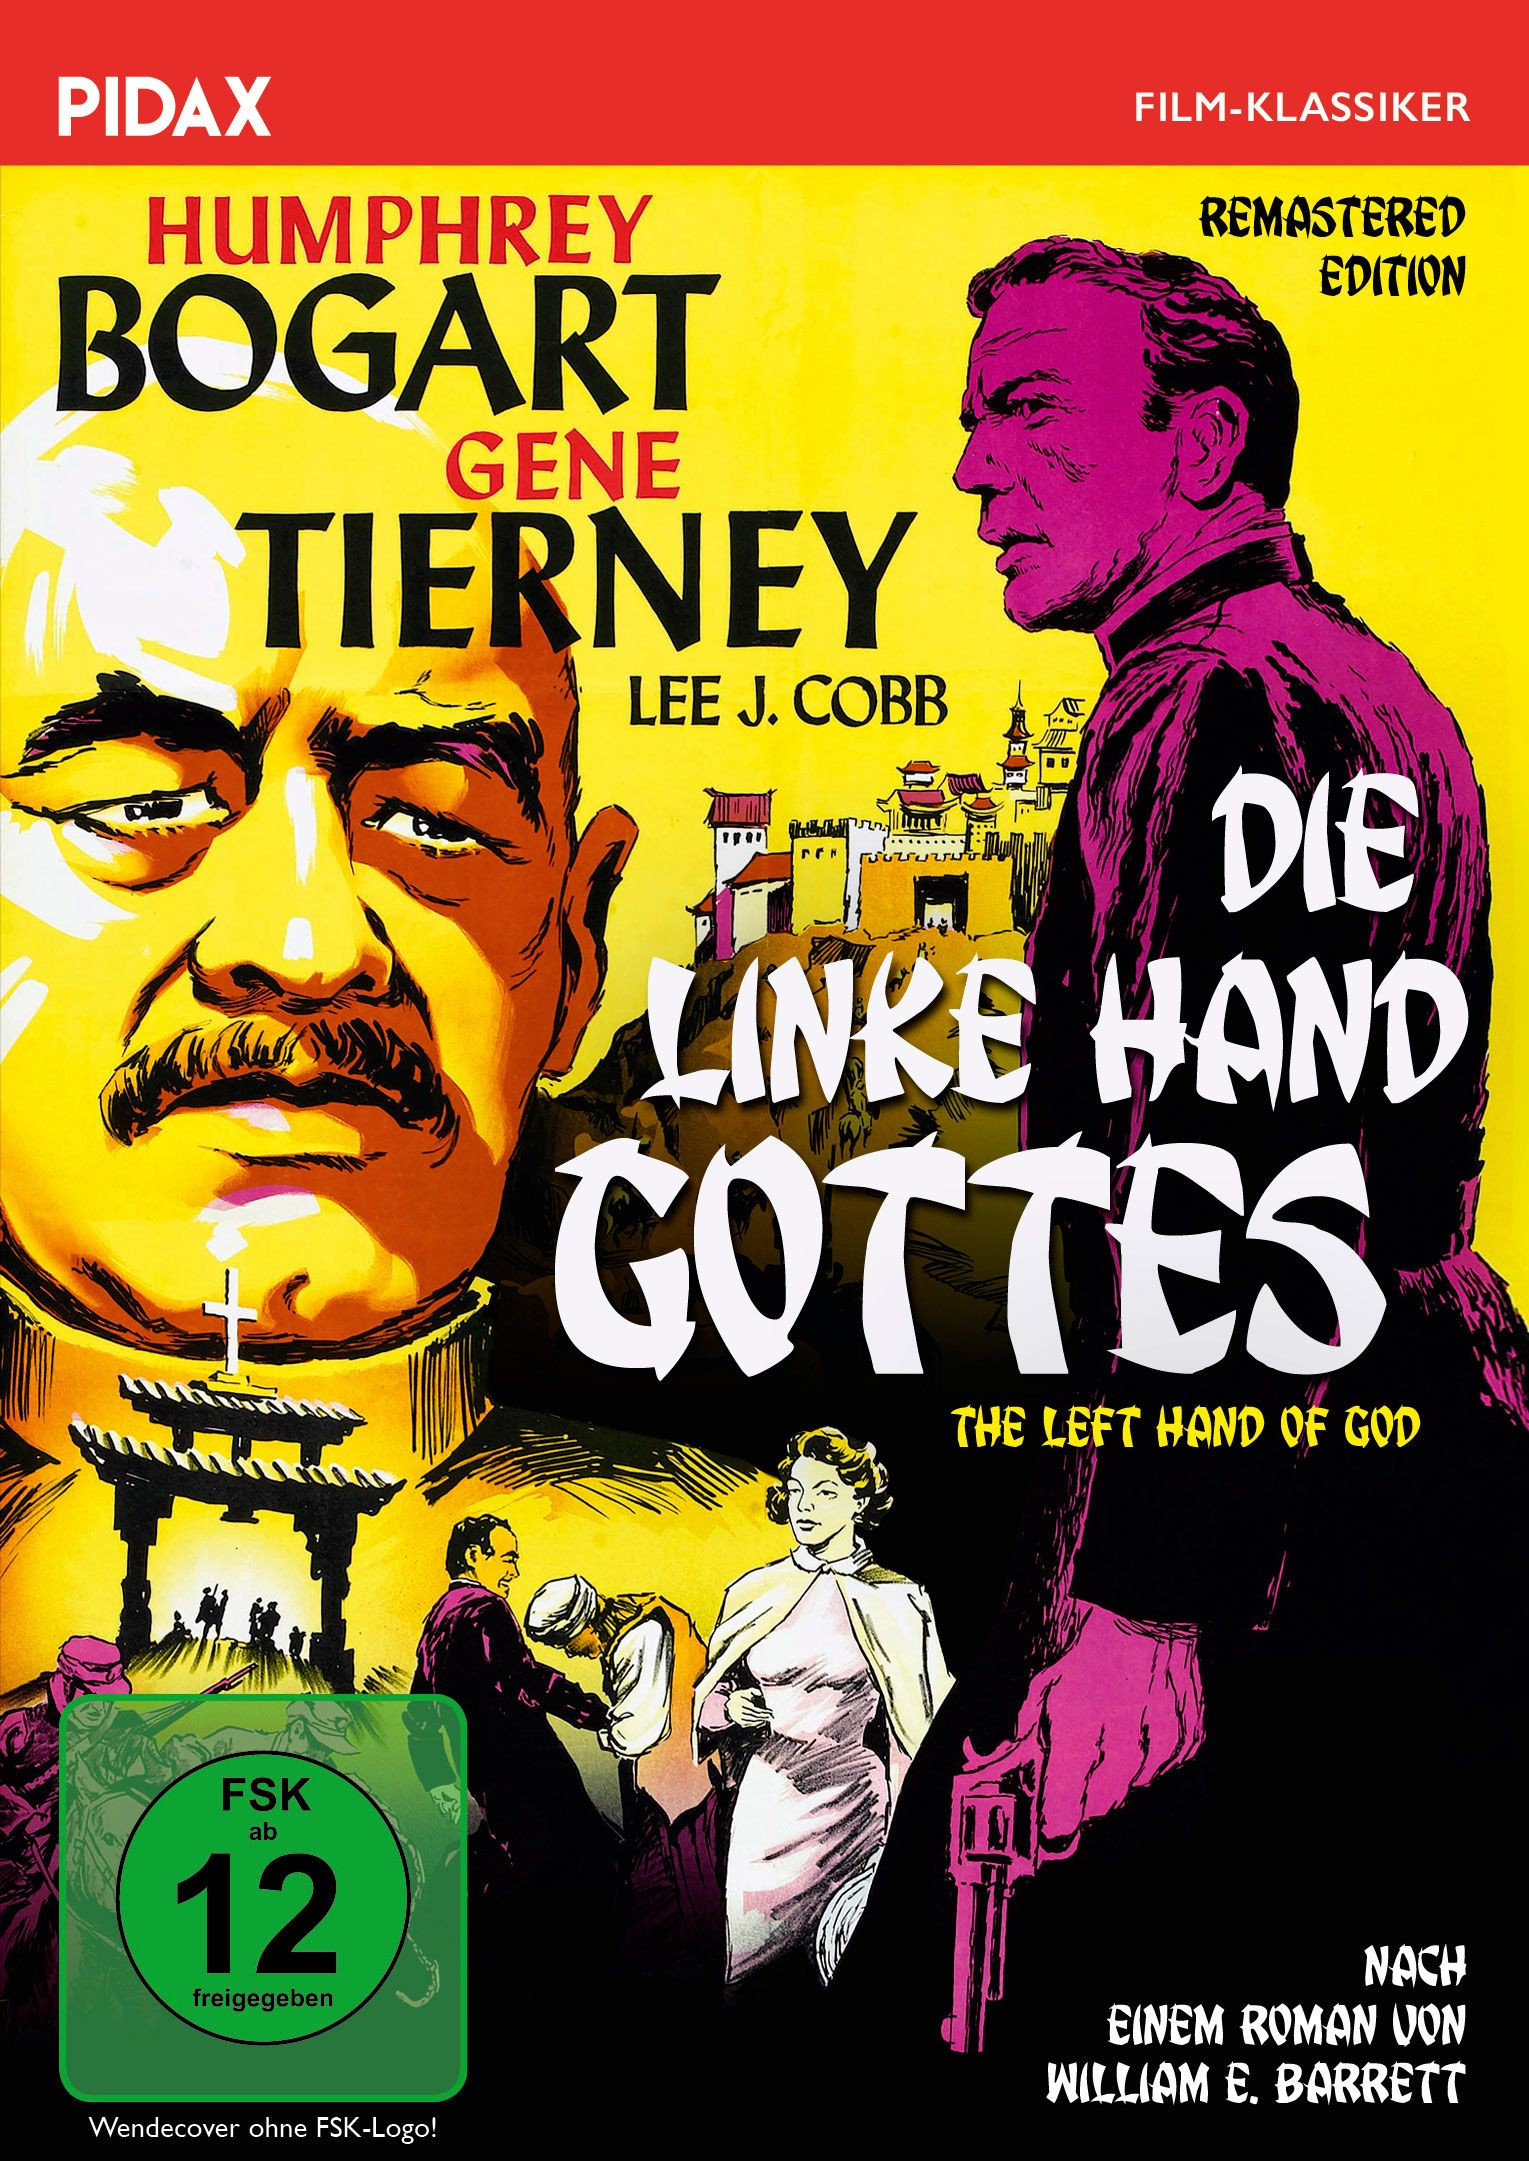 Die linke Hand Gottes (The Left Hand of God) - Remastered | PIDAX ...